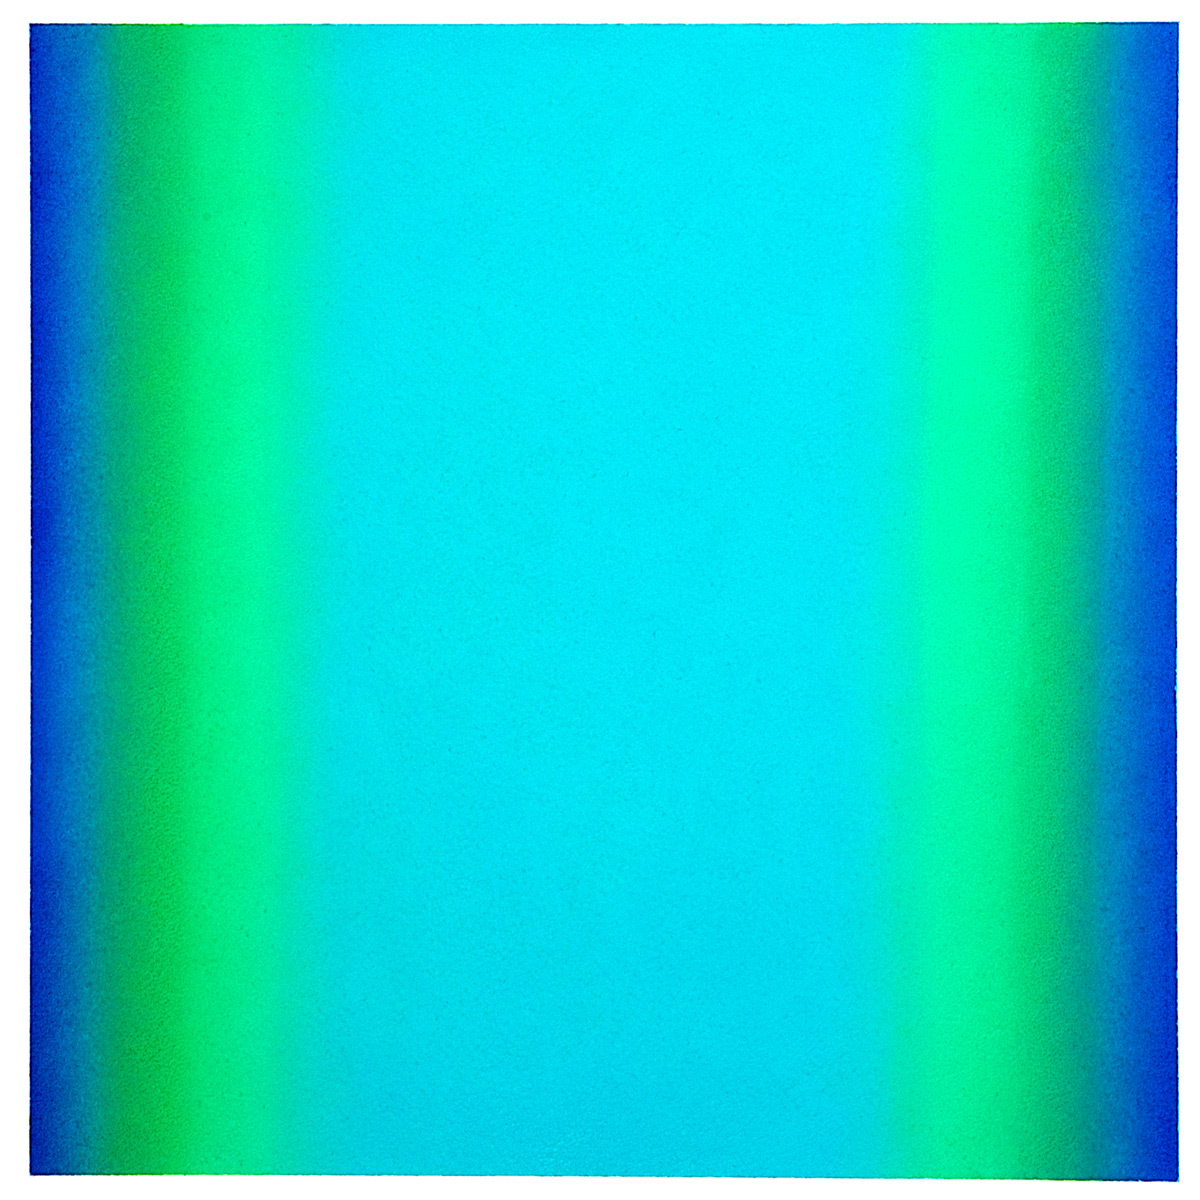 Cool-Light Green-Blue, Warm-Light Cool-Light Series, 2012, pastel on paper, image: 14 x 14 in. (36 x 36 cm.), sheet: 30 x 22 in. (76 x 56 cm.)